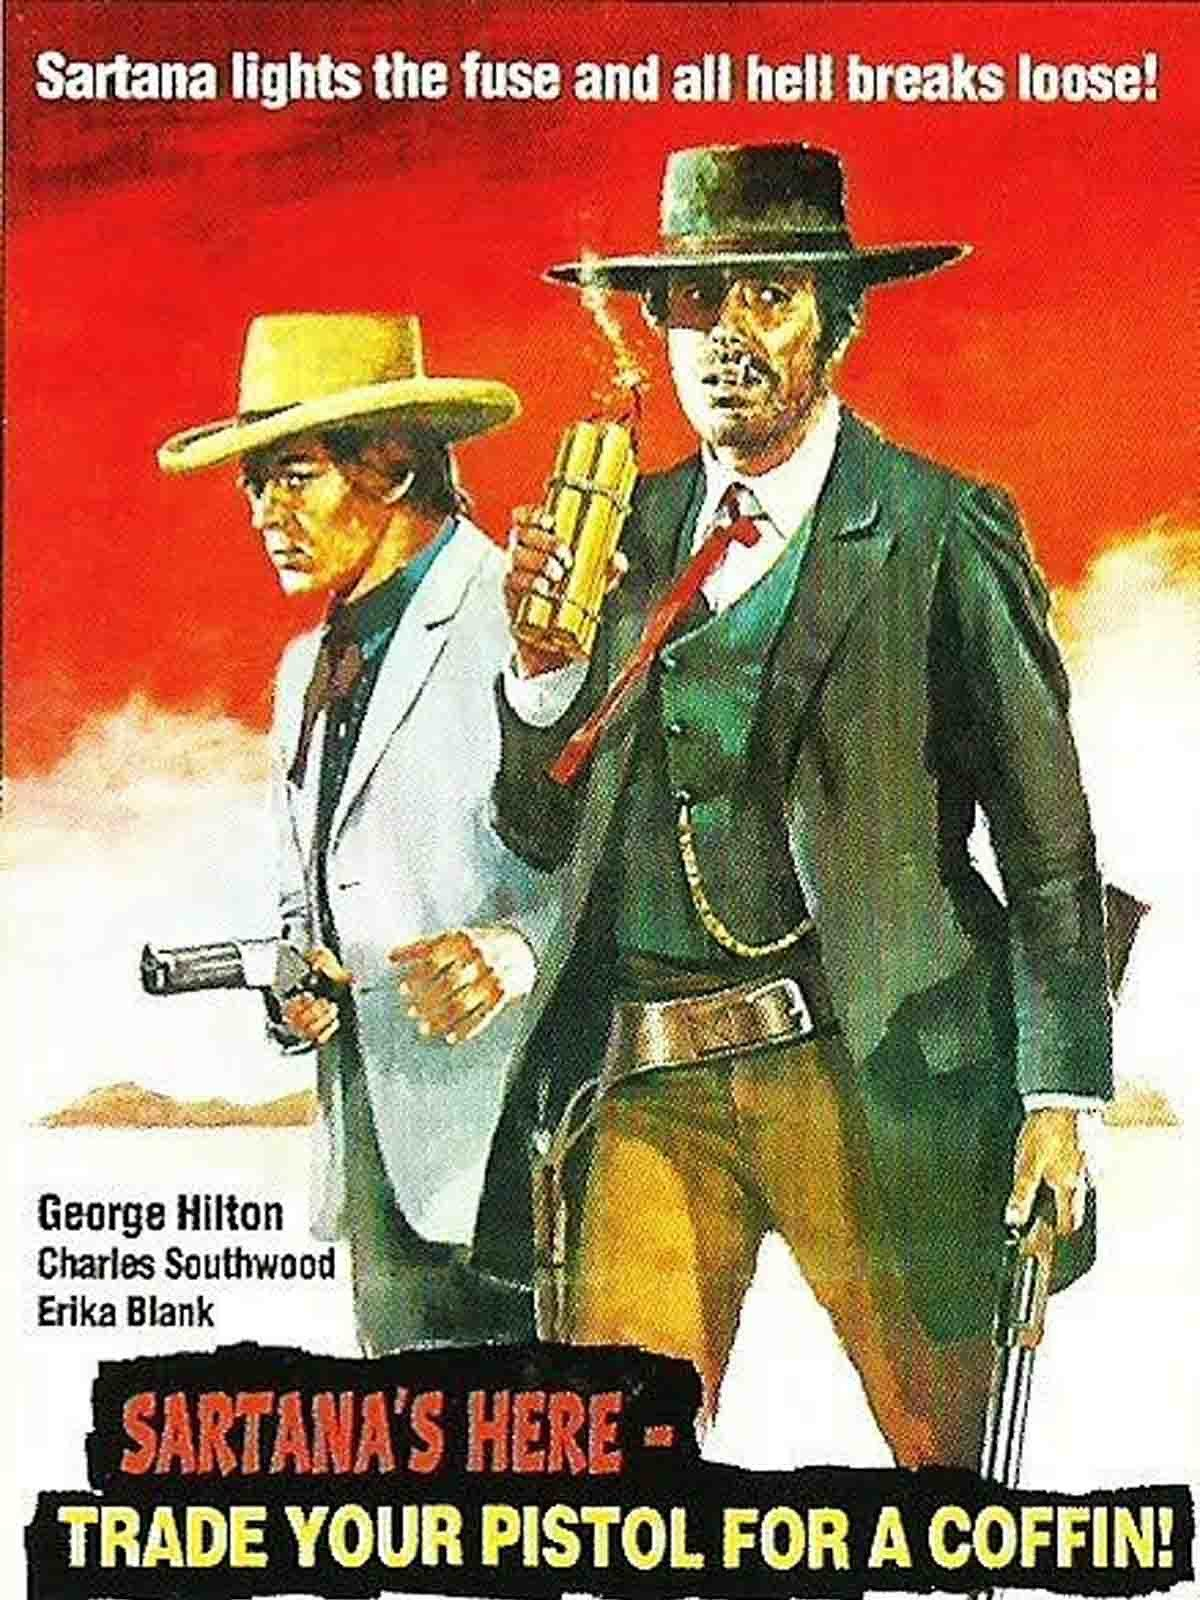 Sartana's Here..Trade Your Pistol For A Coffin